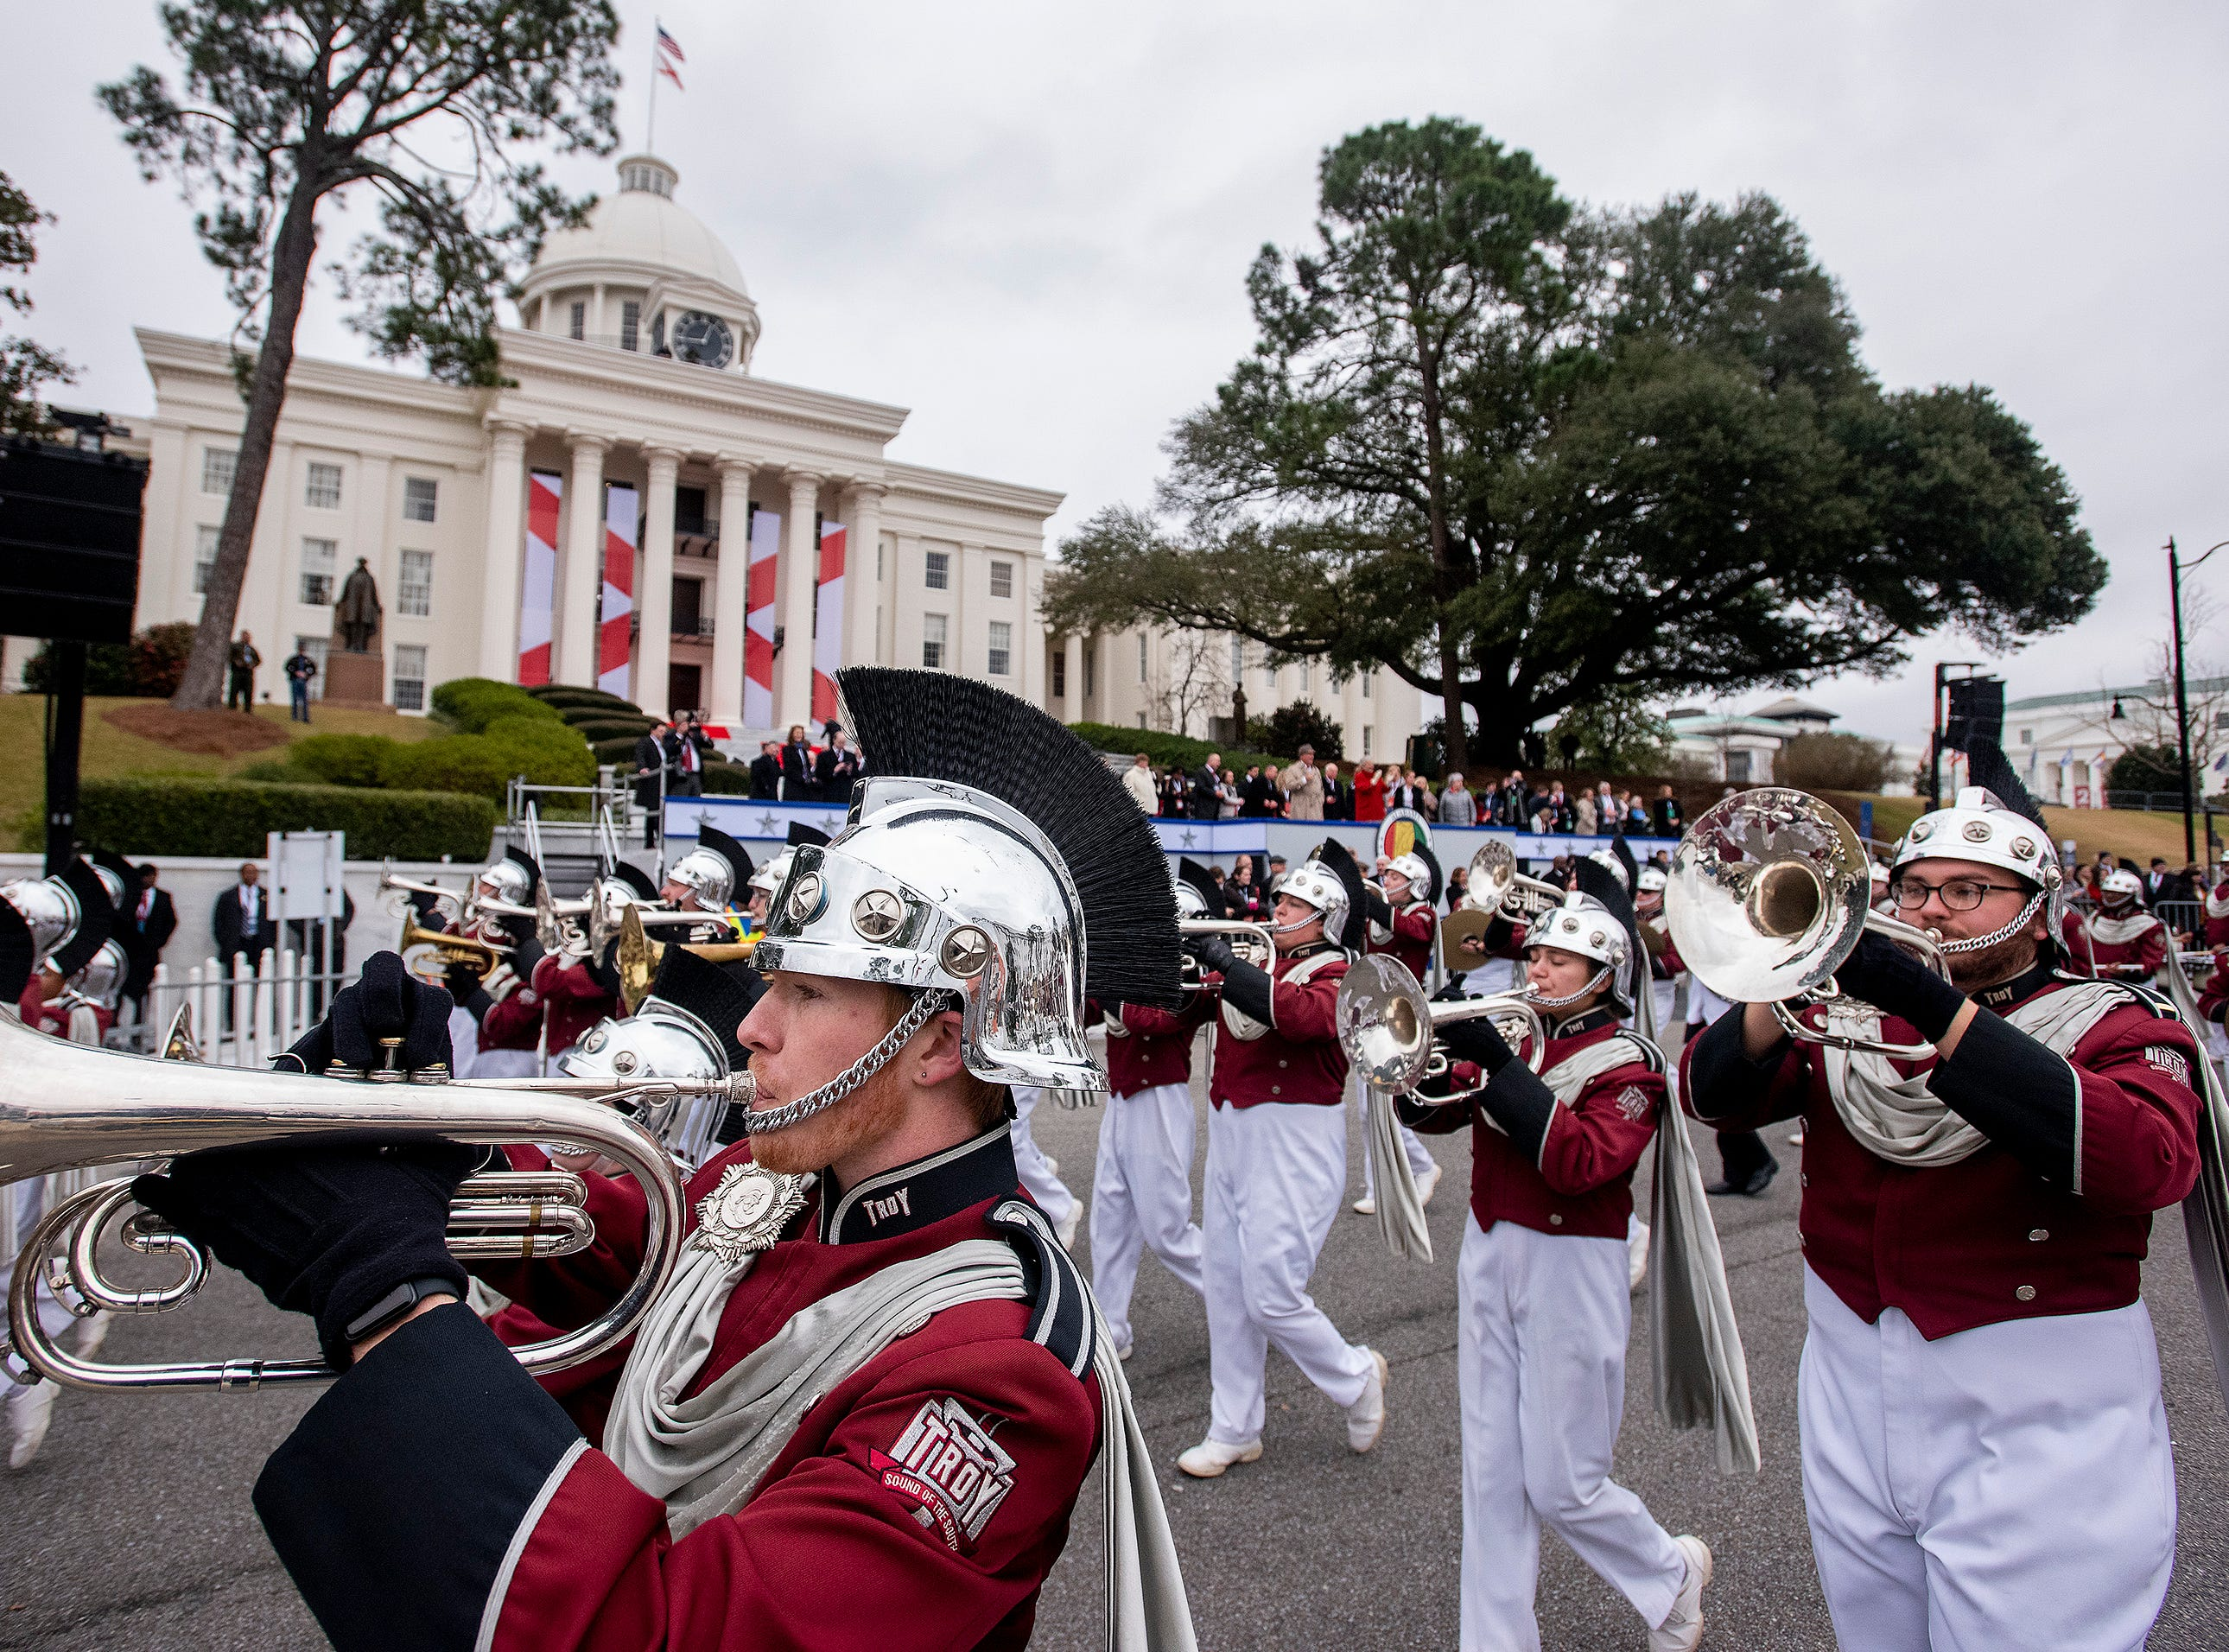 The Troy University Marching Band marches during the Inauguration Parade for Governor Kay Ivey in Montgomery, Ala., on Monday January 14, 2019.